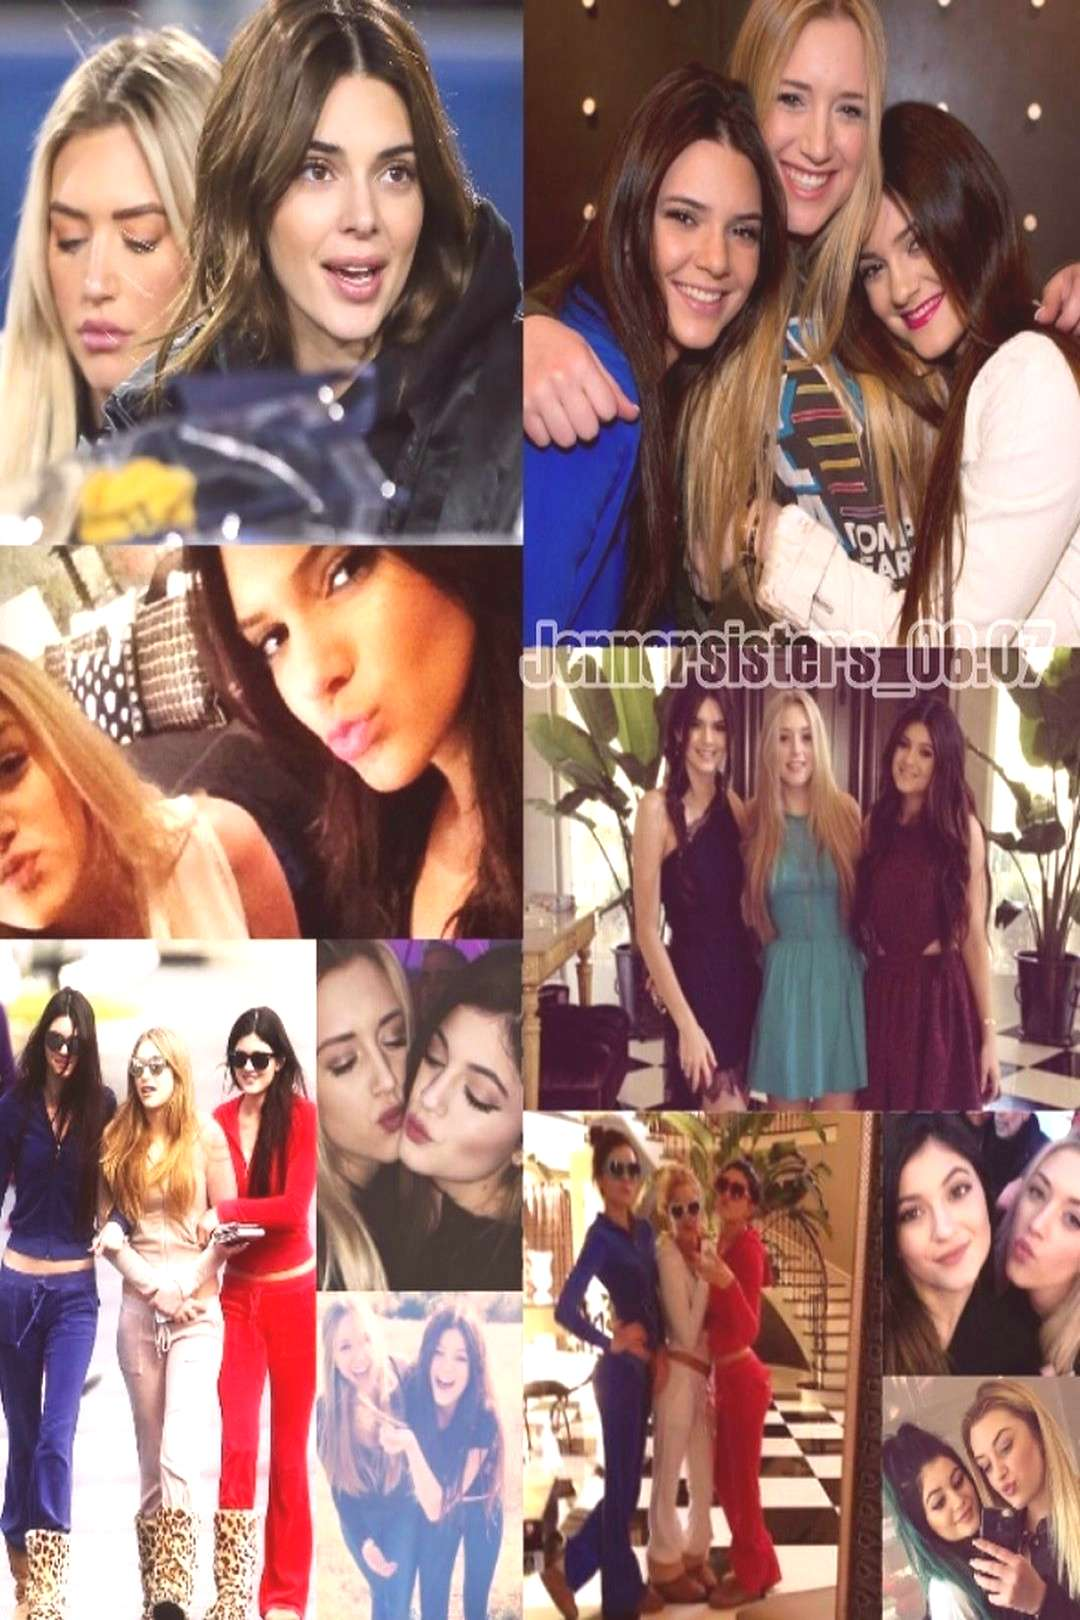 Kendall and Kylie Fan Edits on June 09 2020 and 19 people child